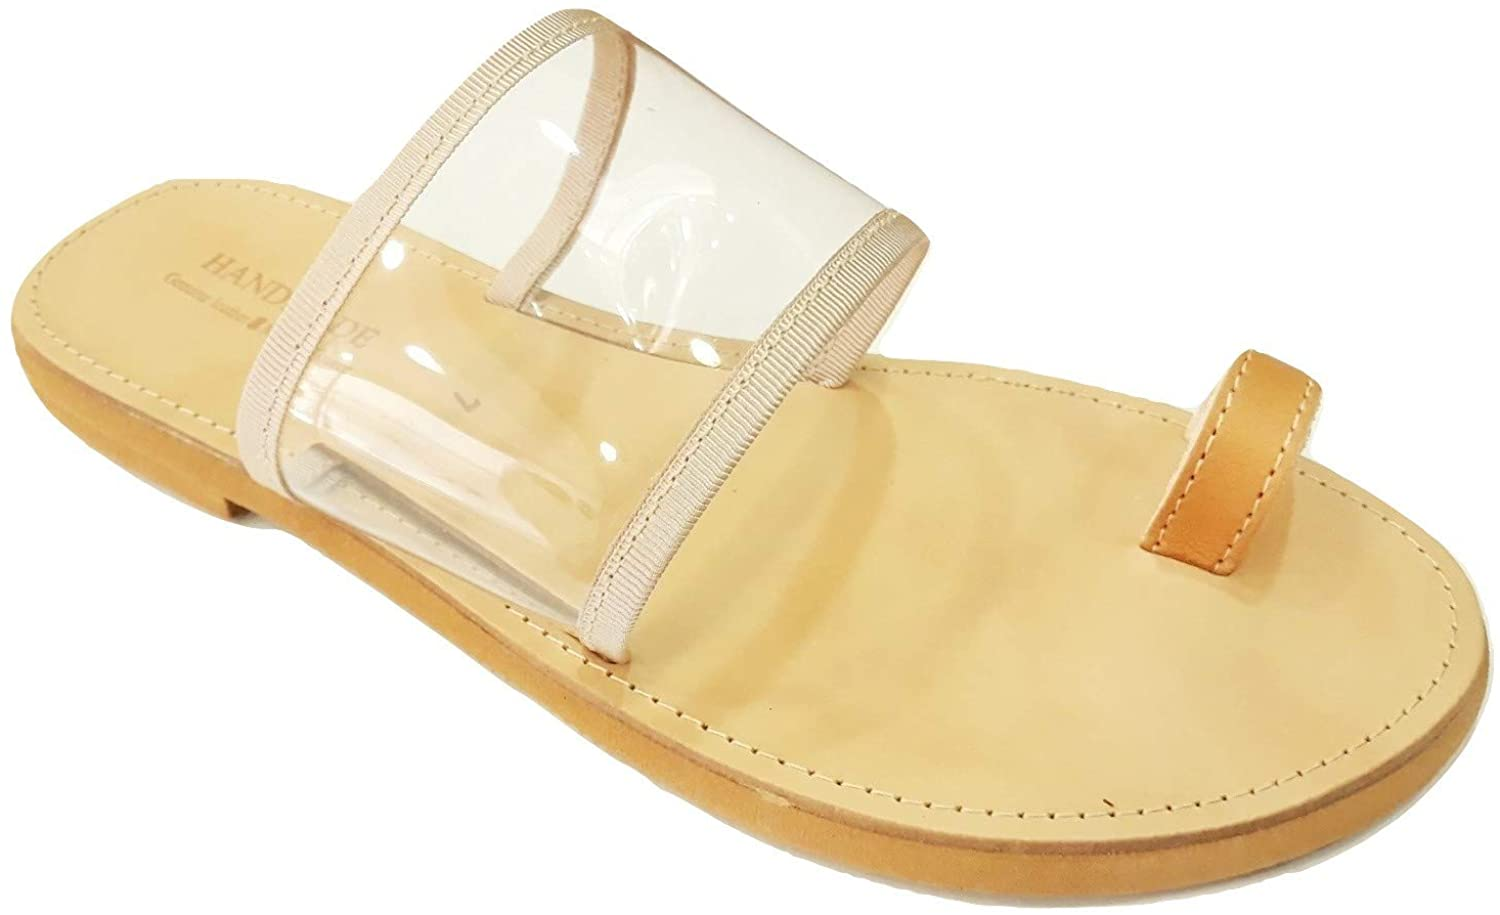 Greek Leather Sandals Manto Women Handmade Ancient Style Transparent Slide Flat Summer Spartan Roman Genuine Handcrafted Toe Ring Boho Fashion Shoes